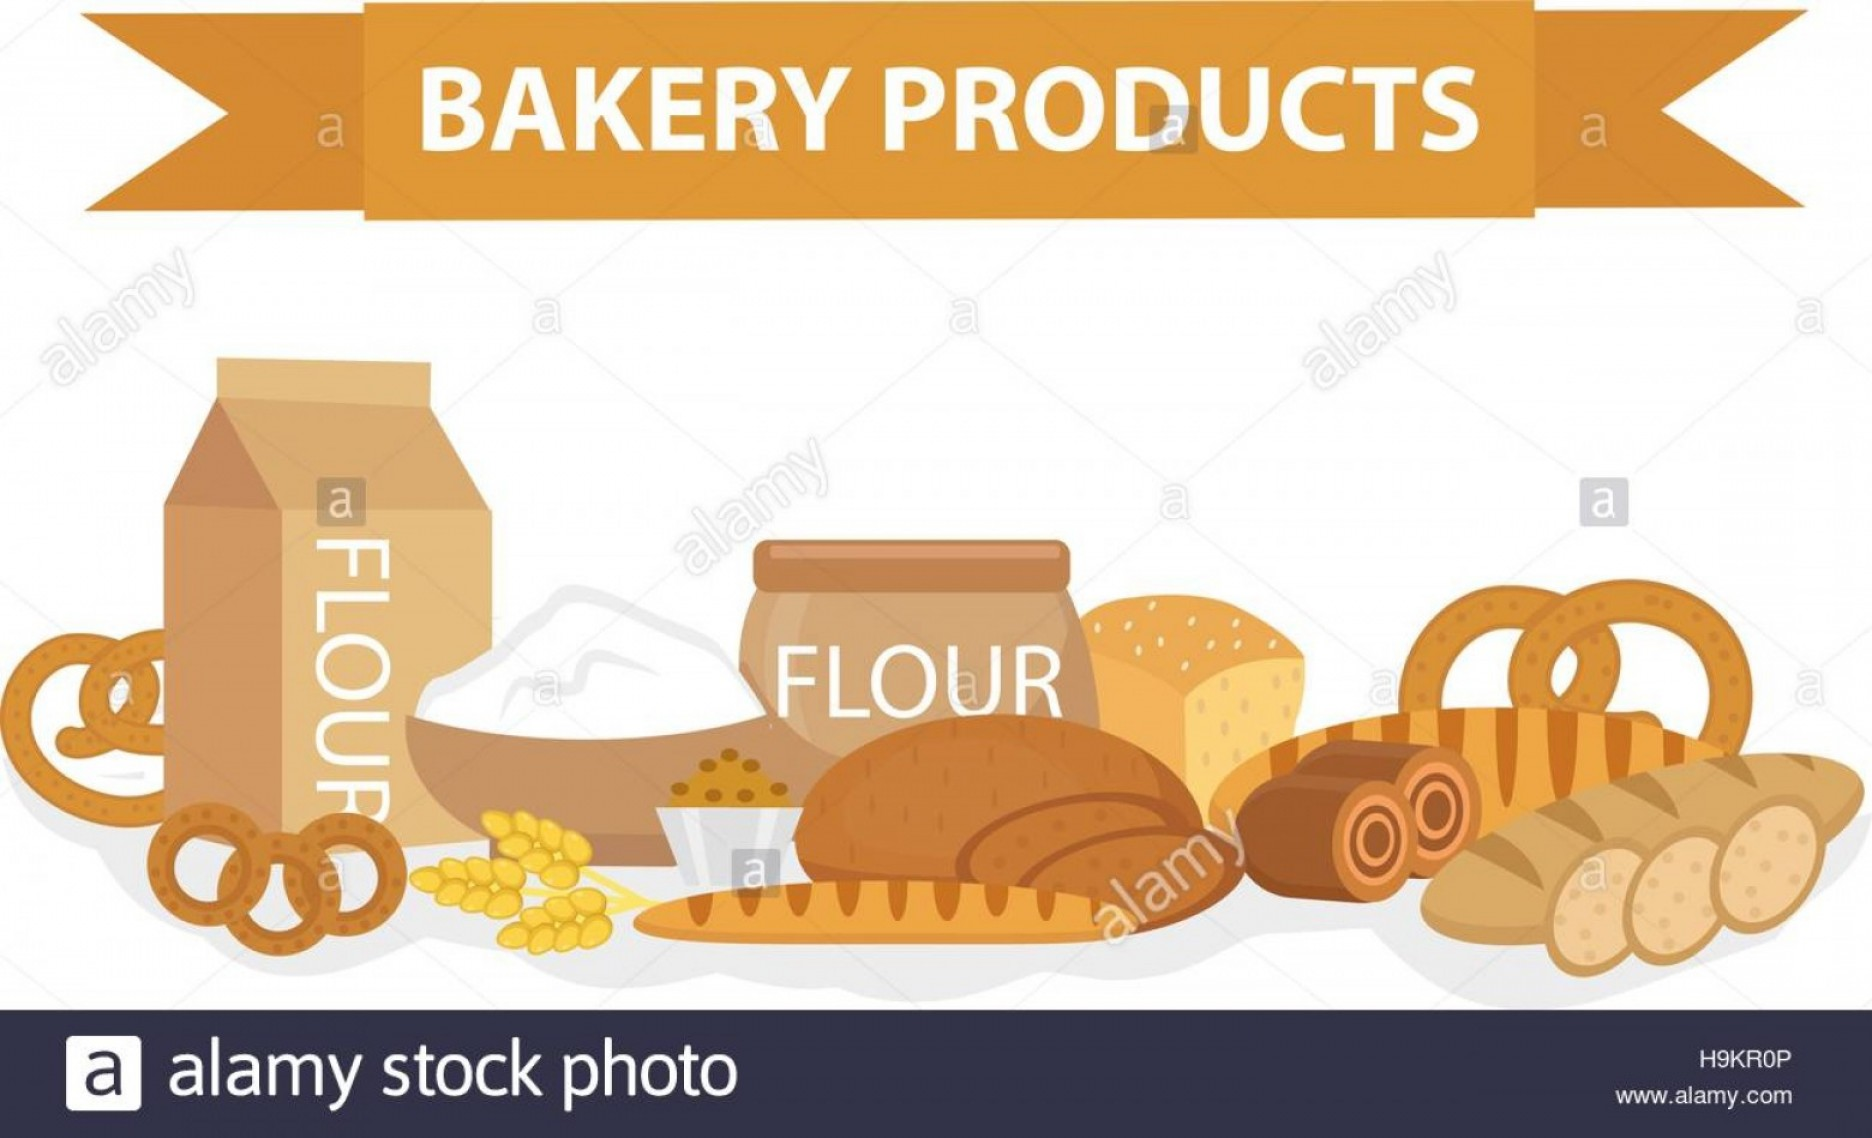 Bread Of Life Vector Art: Stock Photo Bakery Products Still Life Flat Style Set Of Different Bread Banner